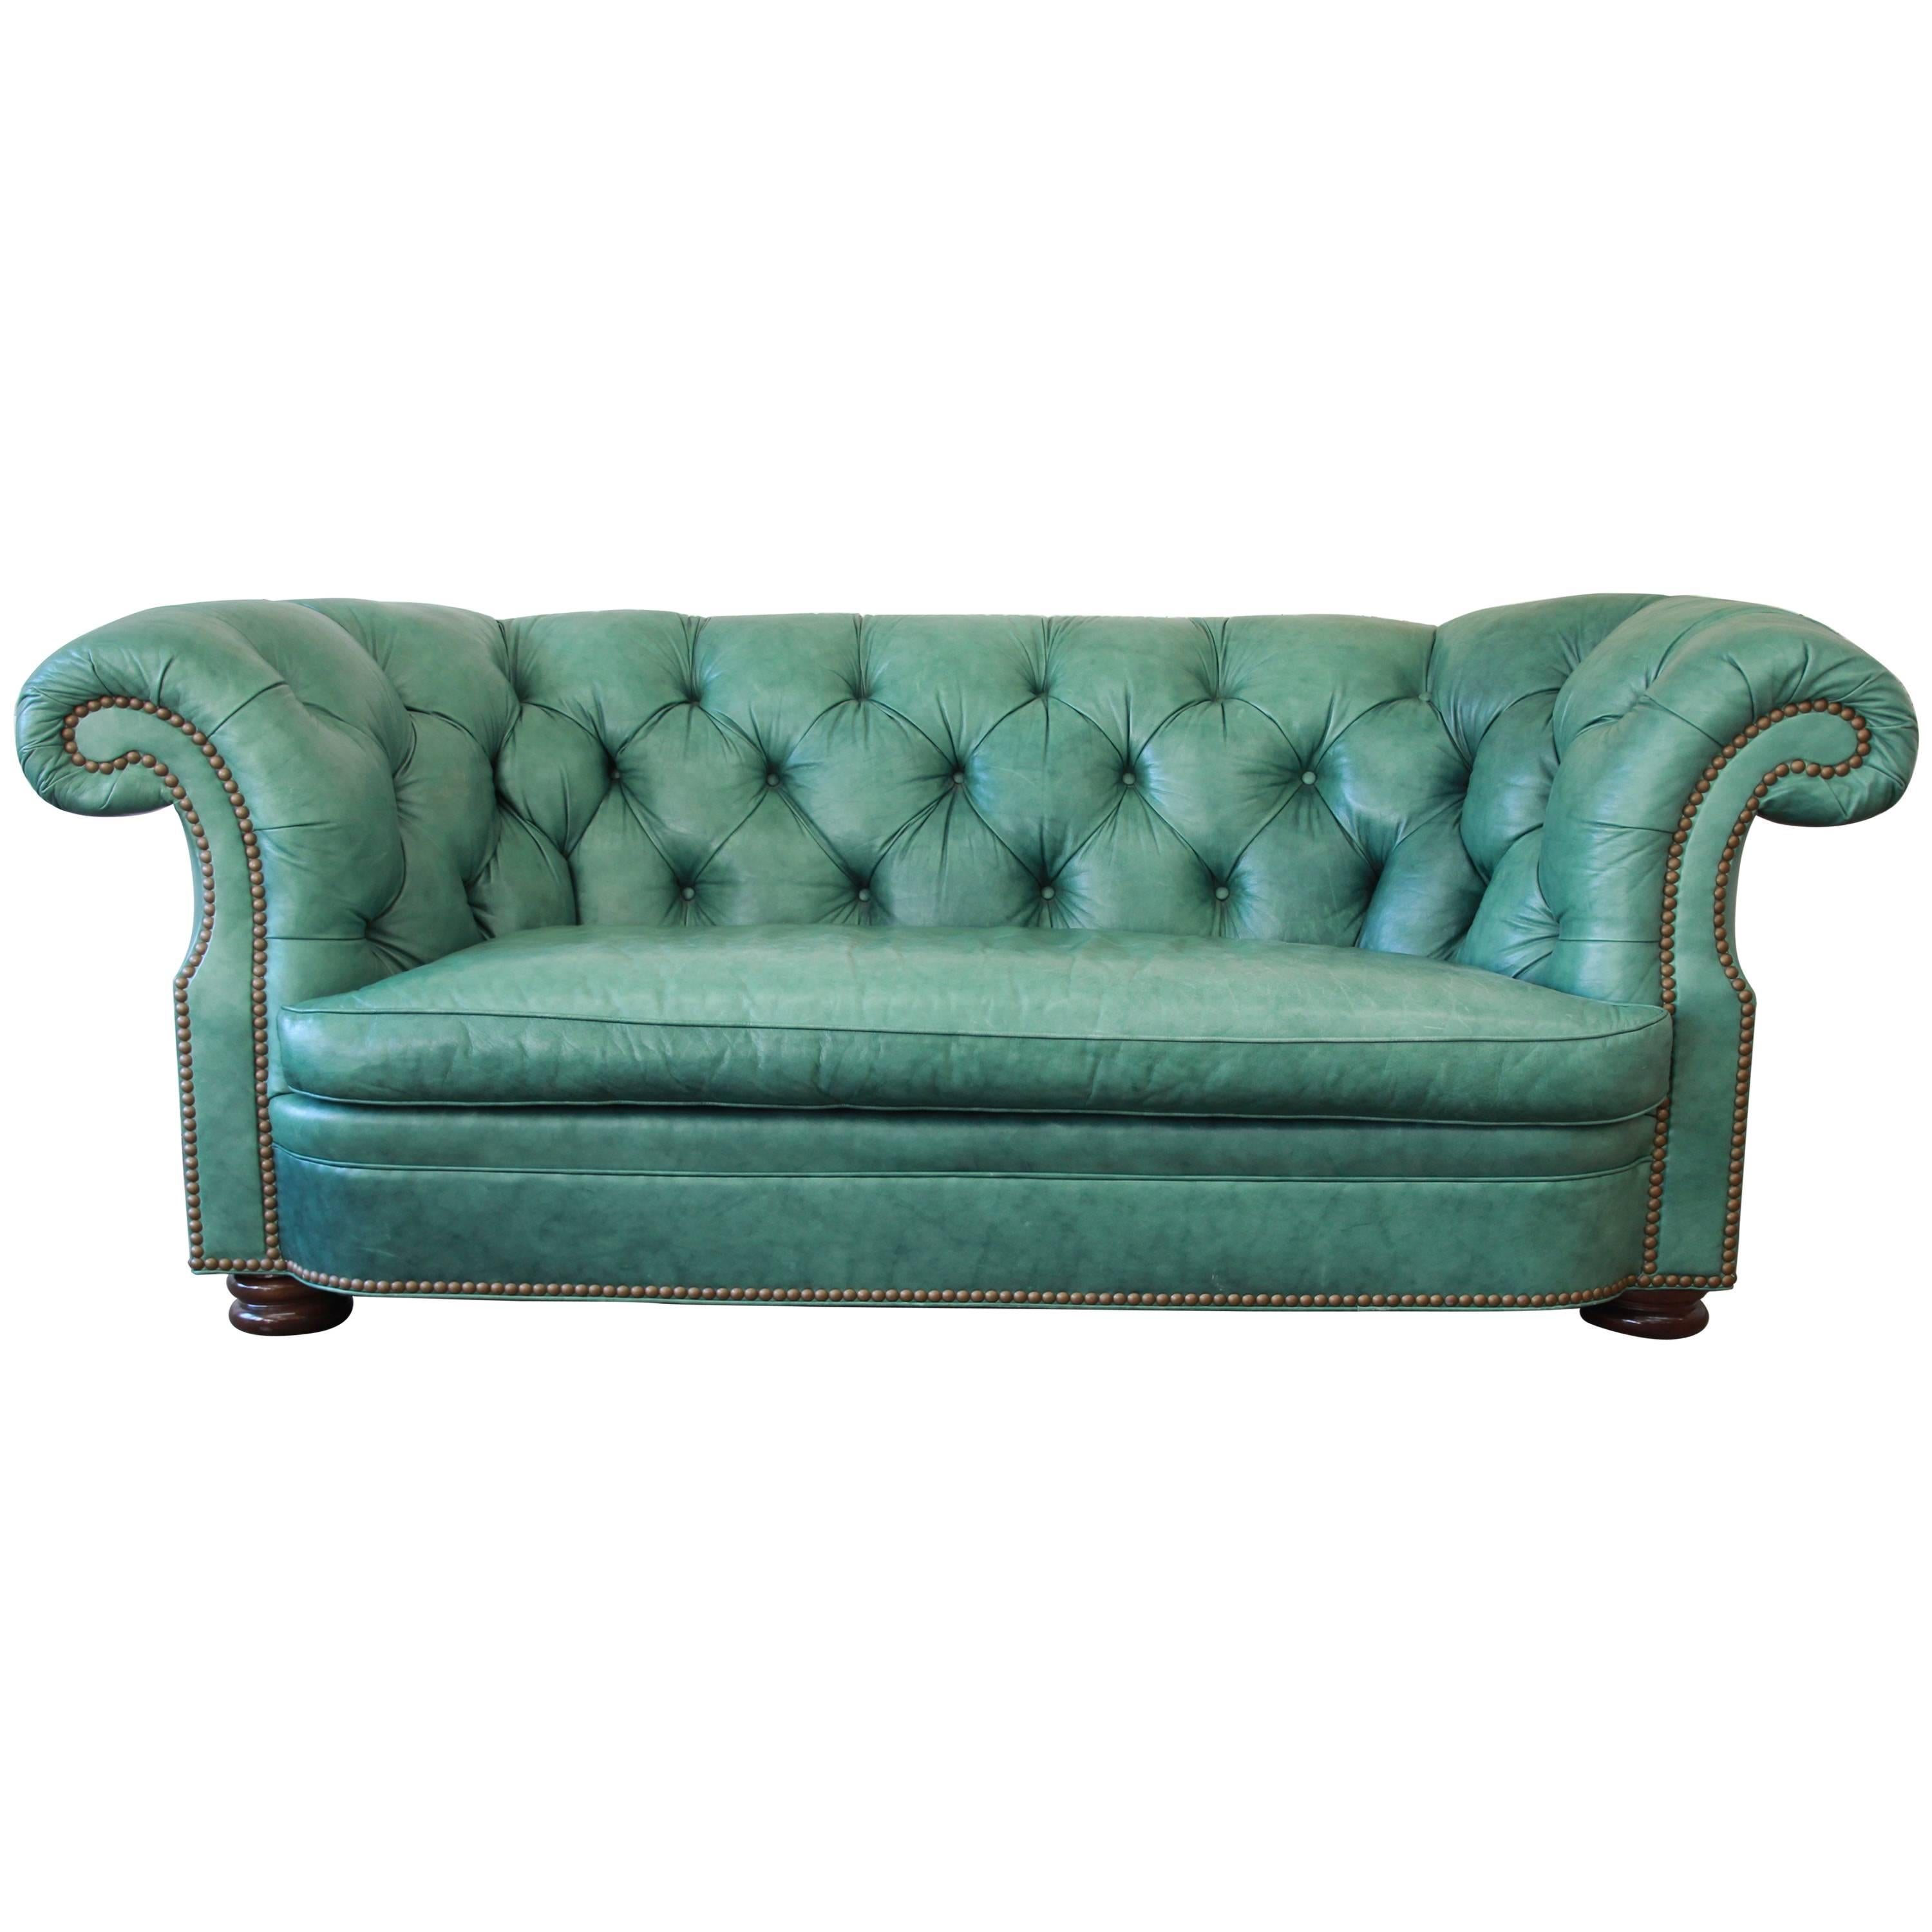 vintage teal tufted leather chesterfield sofa by hancock and moore rh 1stdibs co uk Teal Sofa Bed Teal Loveseat